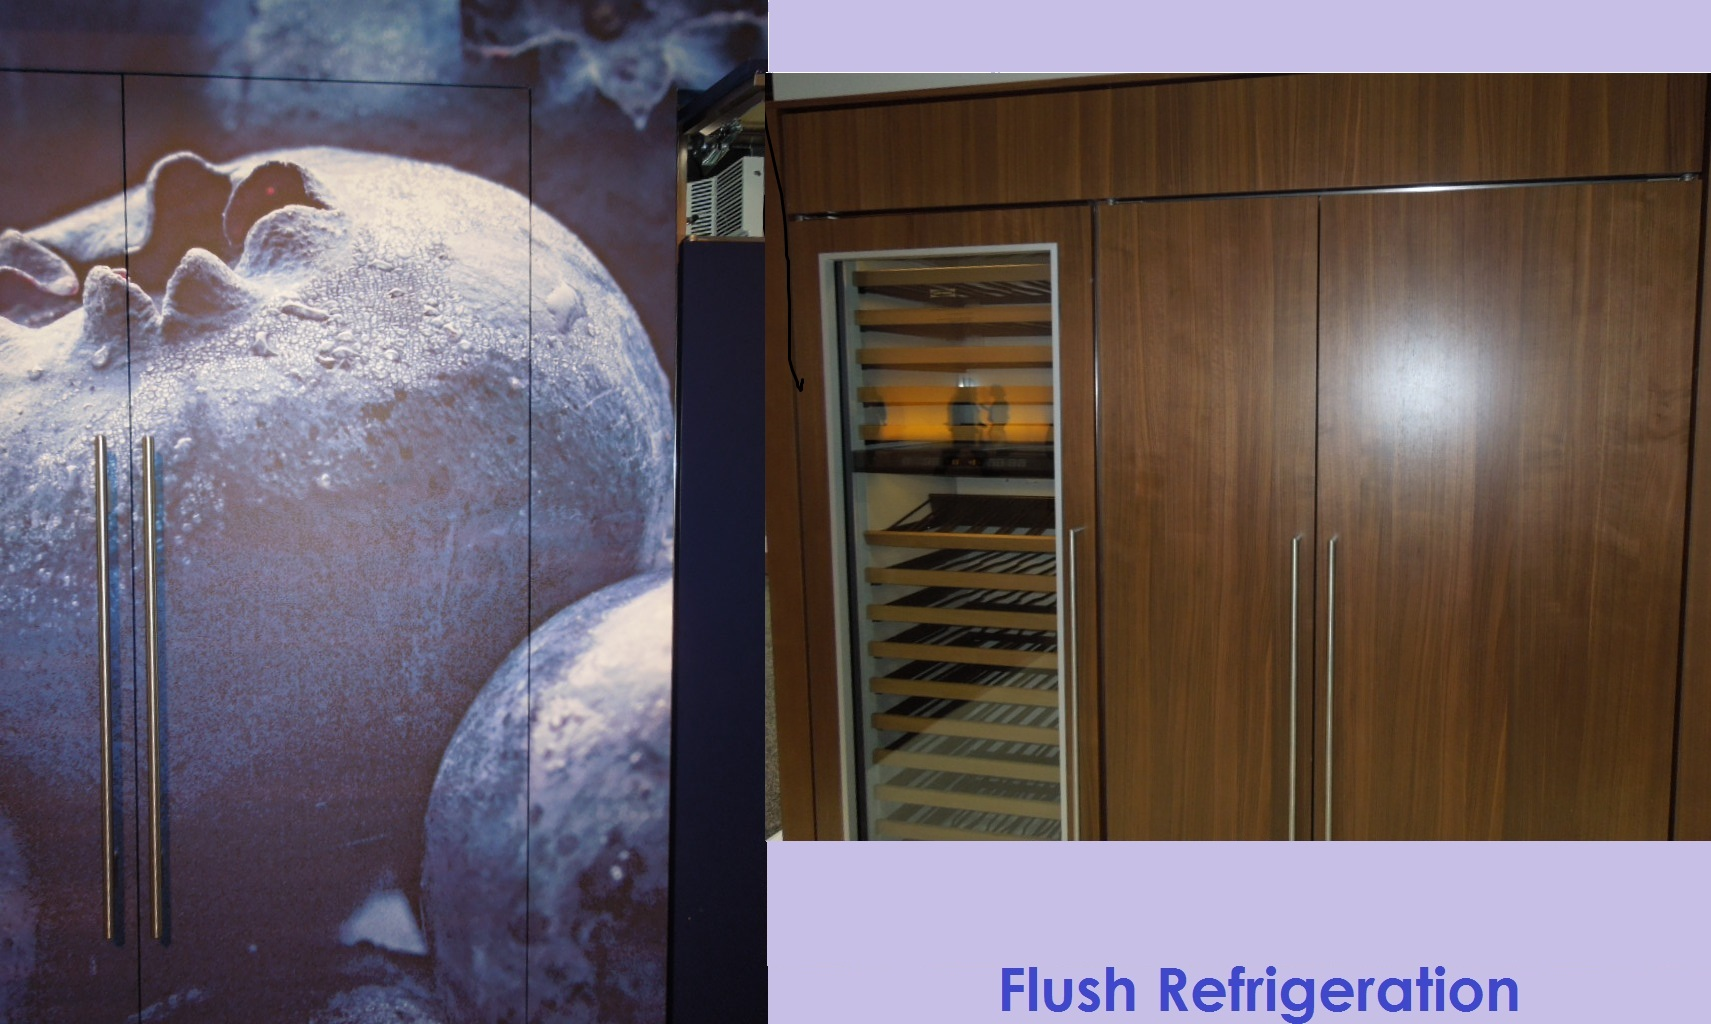 True Flush Refrigerator from Sub-Zero Wolf